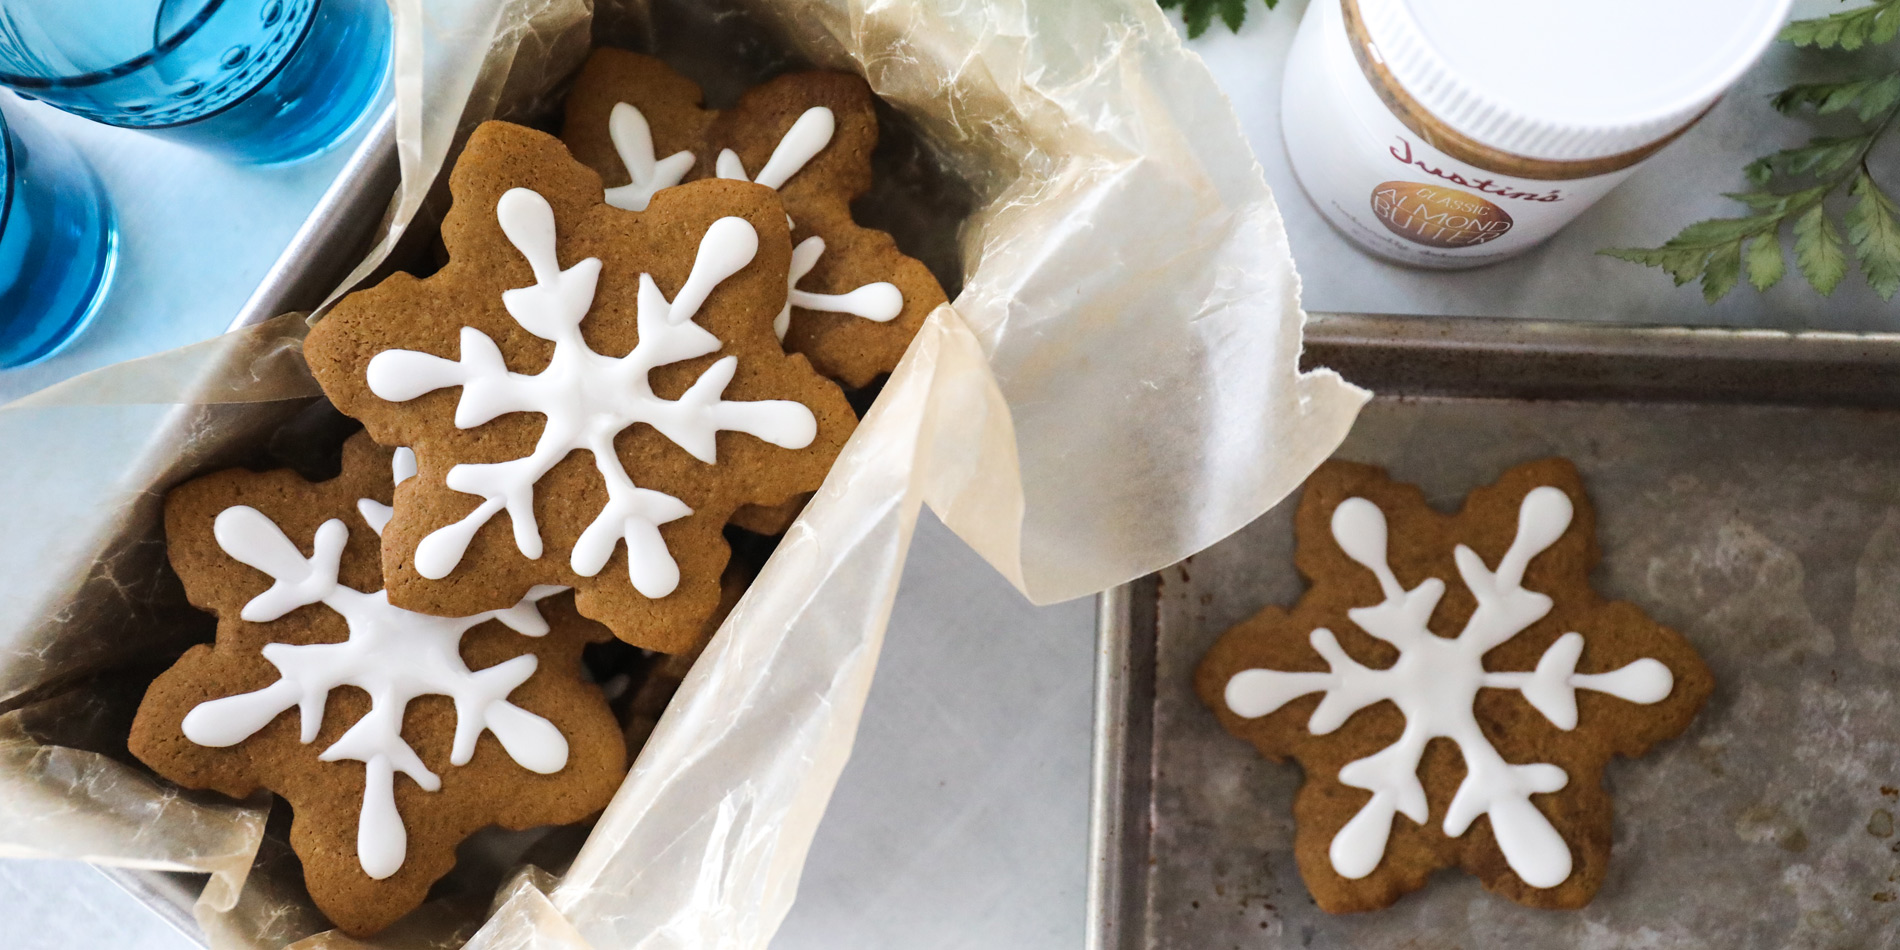 Almond Butter Gingerbread Cookies in snowflake shape on parchment paper in a pan on a white background